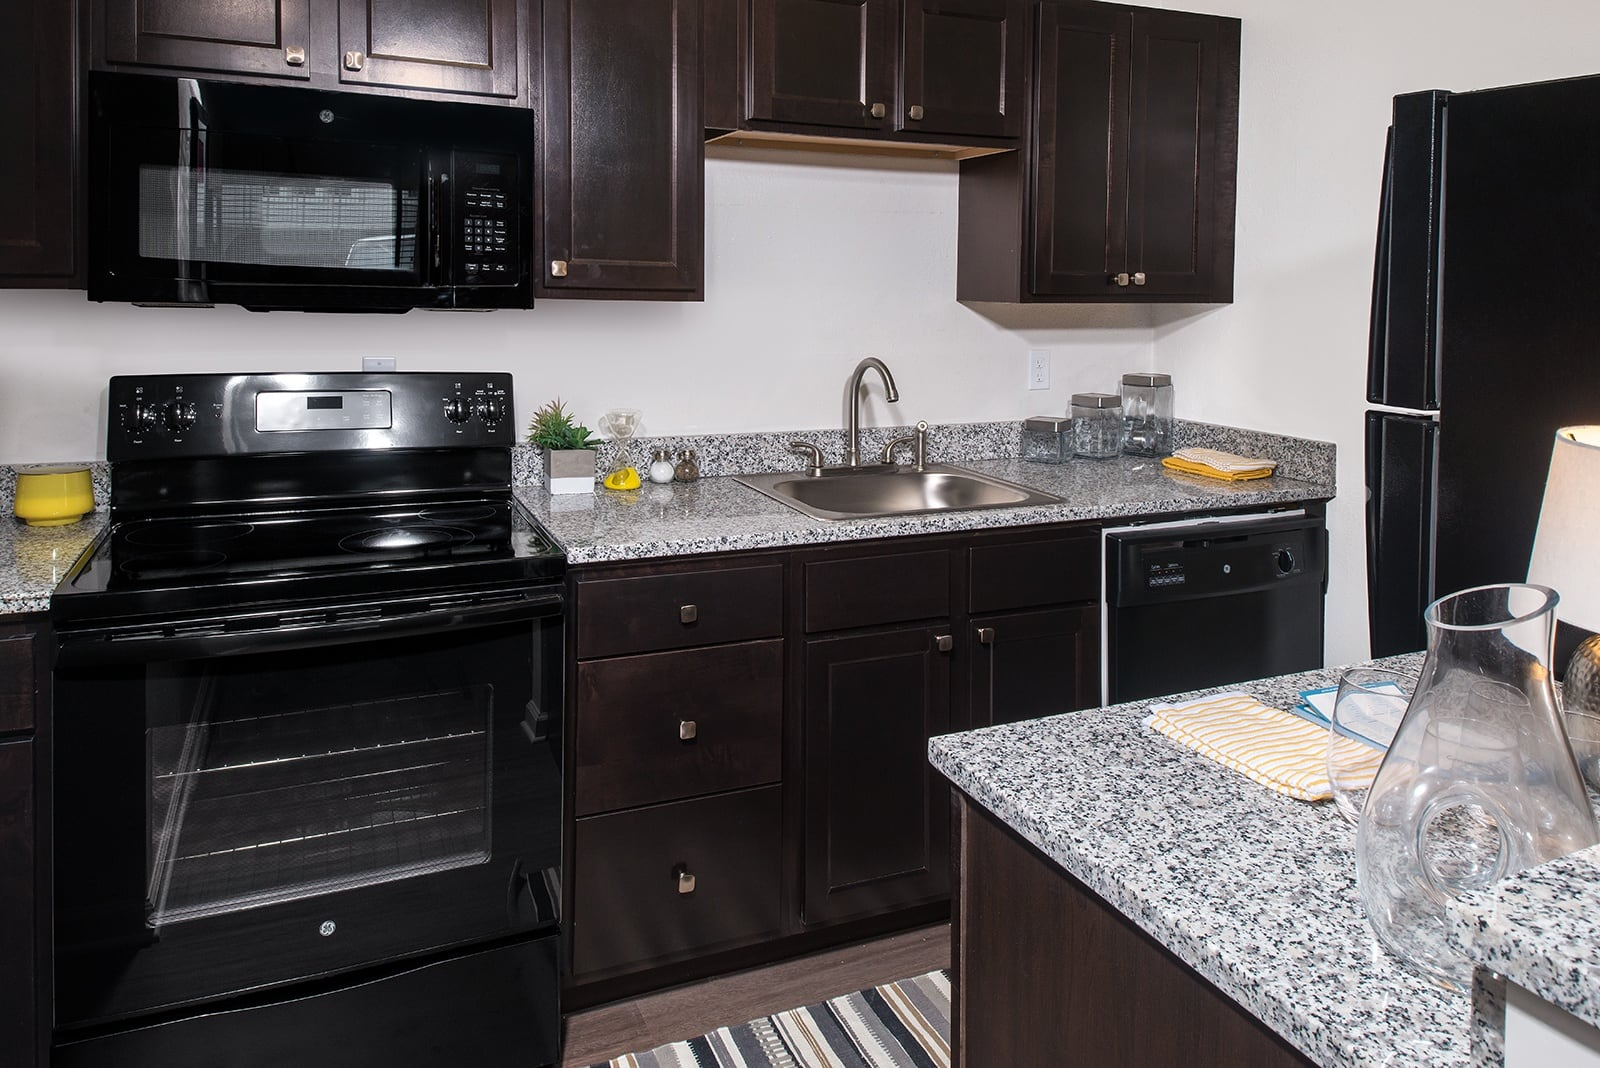 Delicieux Contact Seminole Flatts For 1 Bedroom Availability.